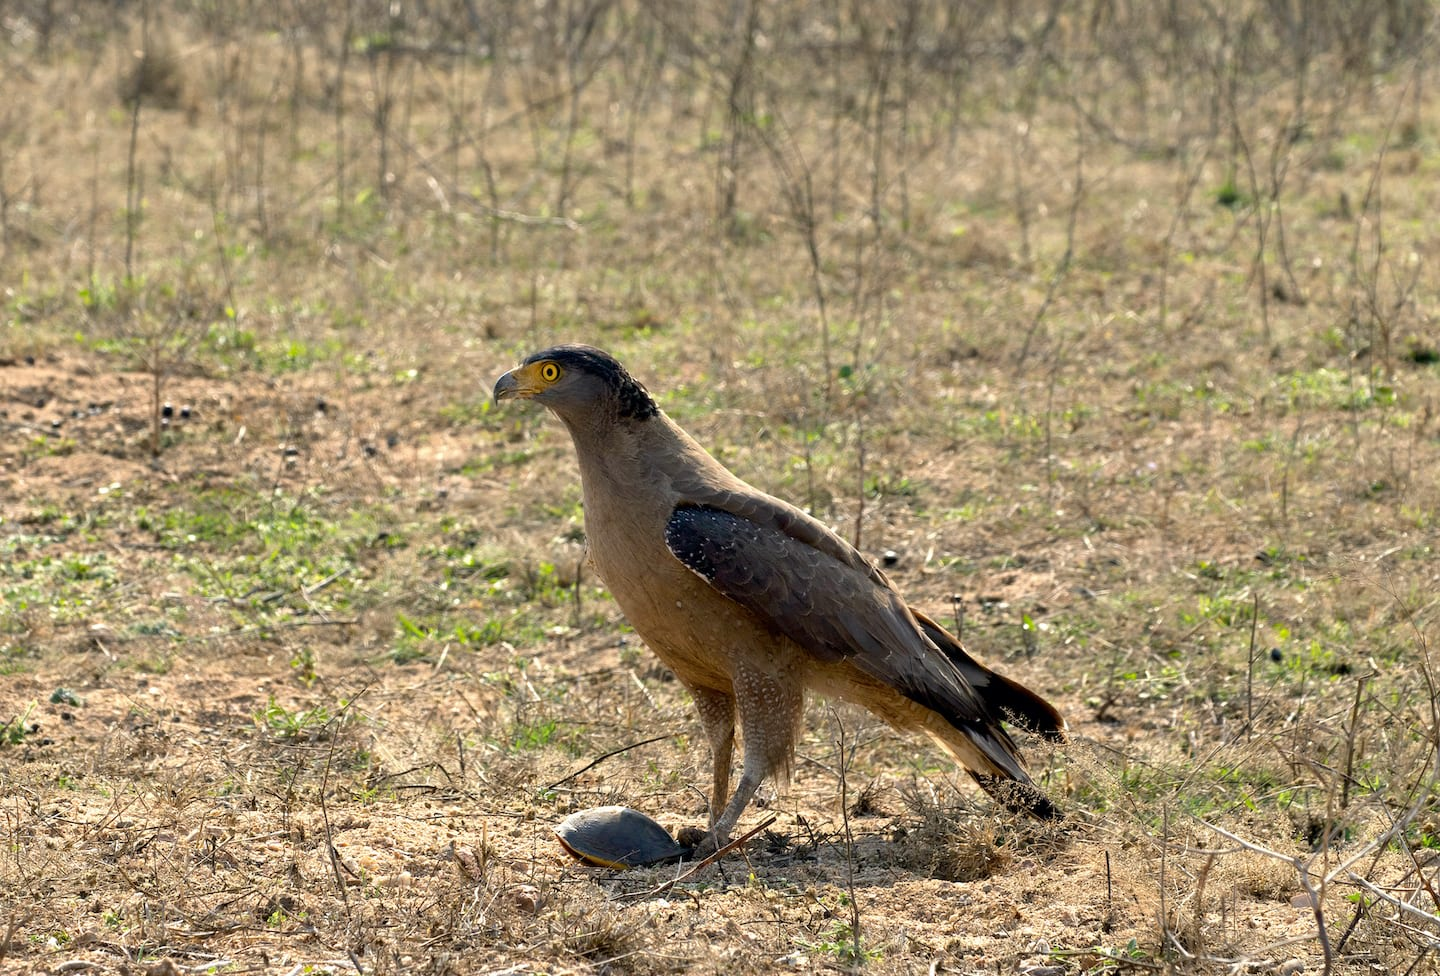 Raptors, such as this crested serpent eagle in Pench Tiger Reserve, prey on flapshell turtles. However, it is humans who are the bigger threat to their survival today. Photo: Tushar Abhyankar